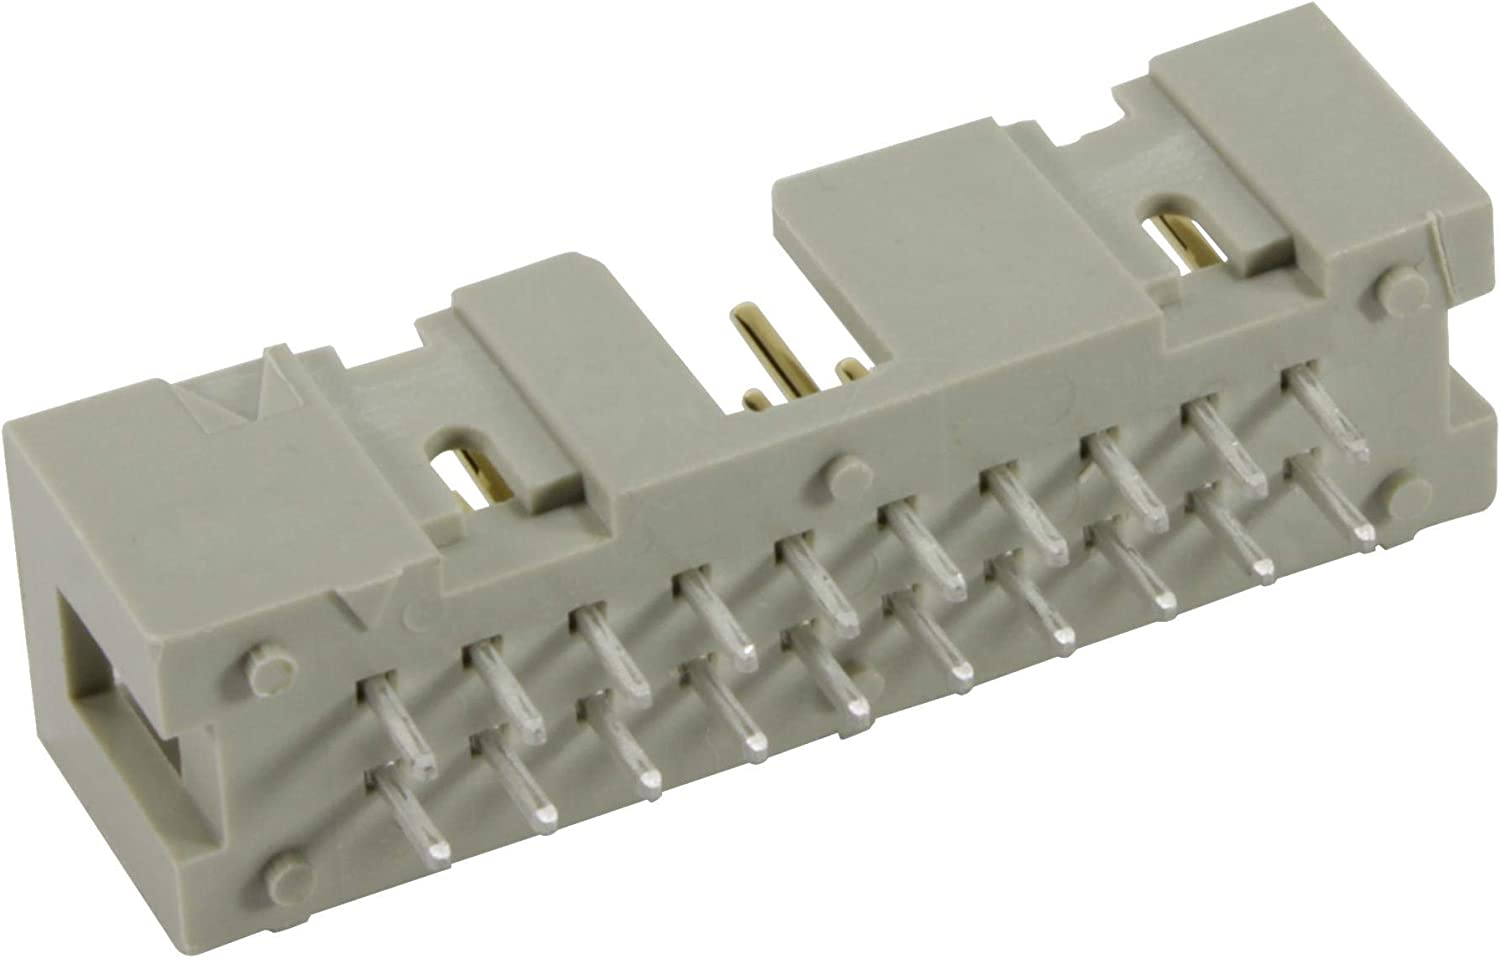 09185265324 2ROW 26POS Pack of 10 HEADER CONNECTOR 2.54MM,